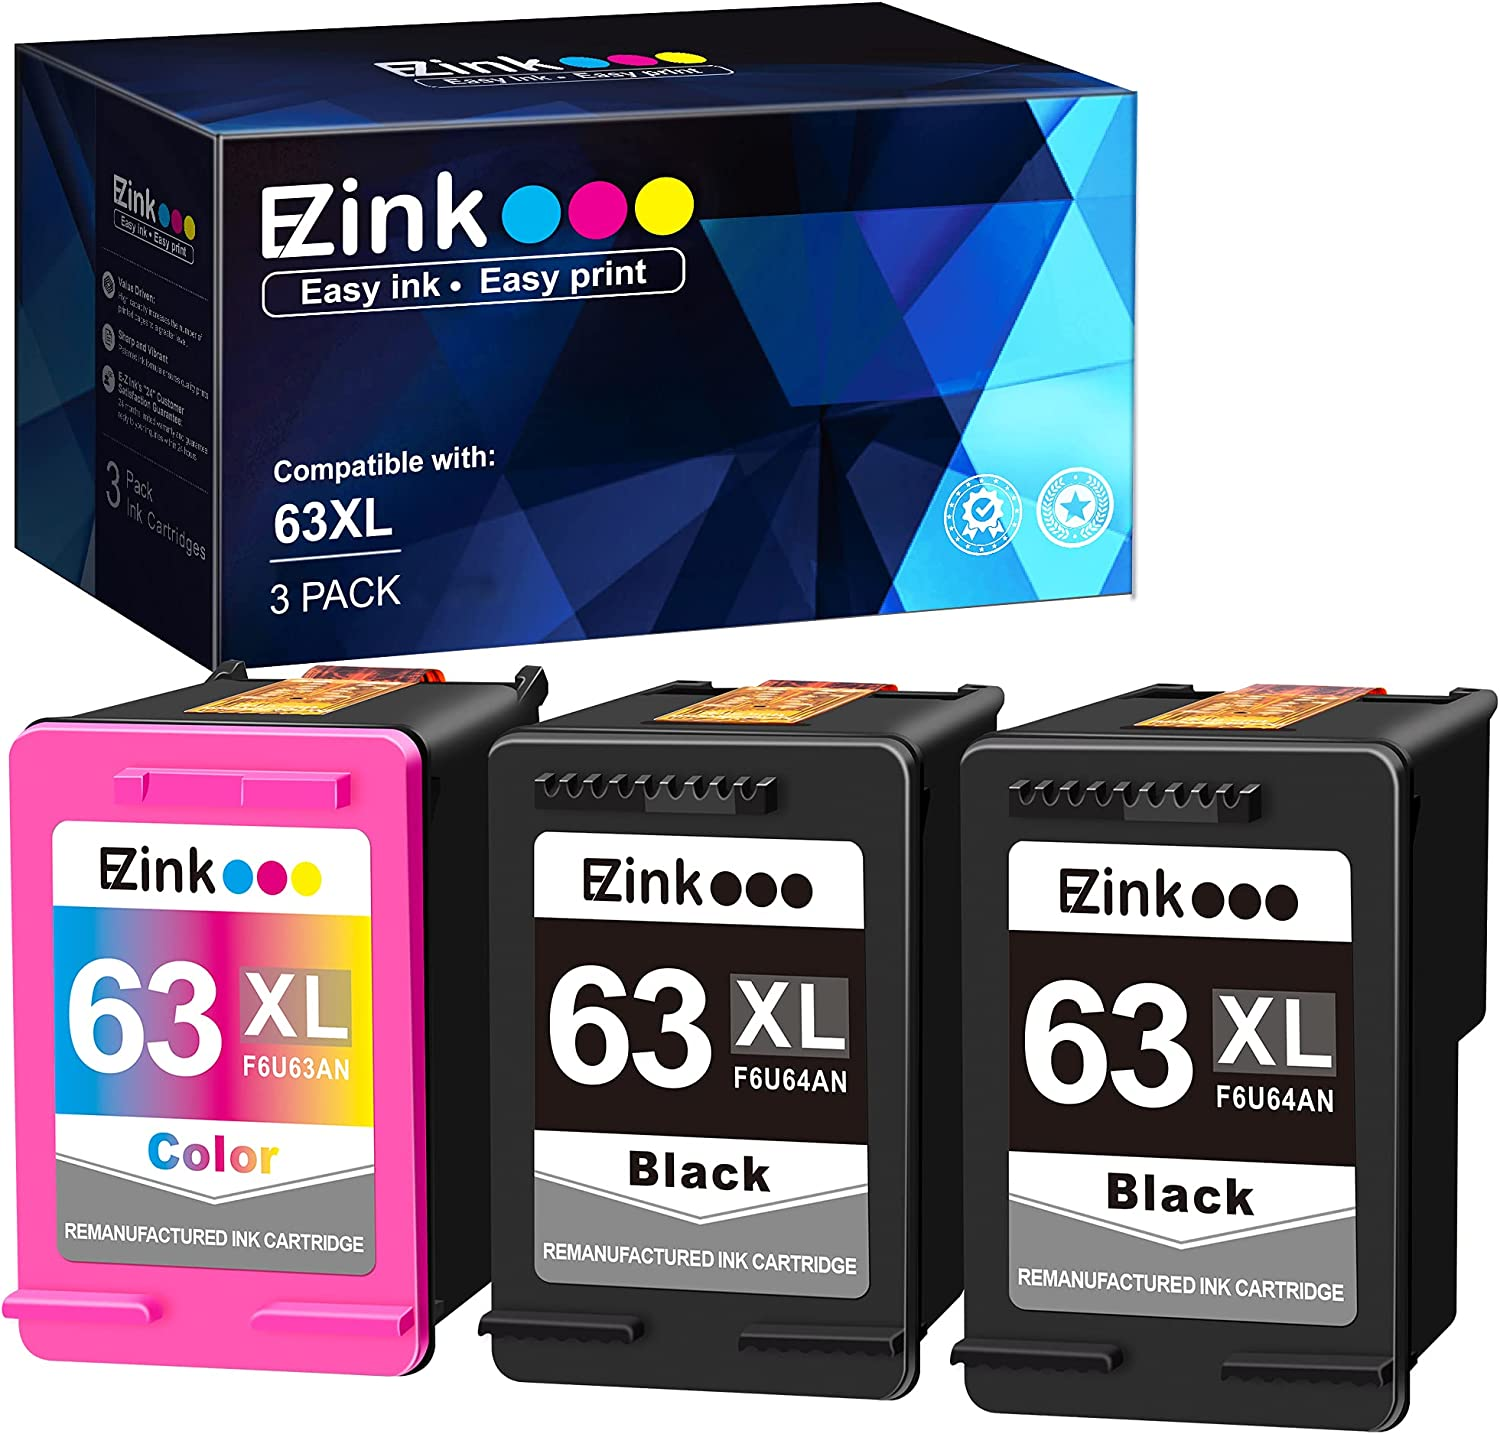 E-Z Ink (TM) Remanufactured Ink Cartridge Replacement for HP 63XL 63 XL to use with Officejet 3830 5255 4650 3833 Envy 4520 Deskjet 1112 3637 3630 3634 Printer (2 Black, 1 Tri-Color)